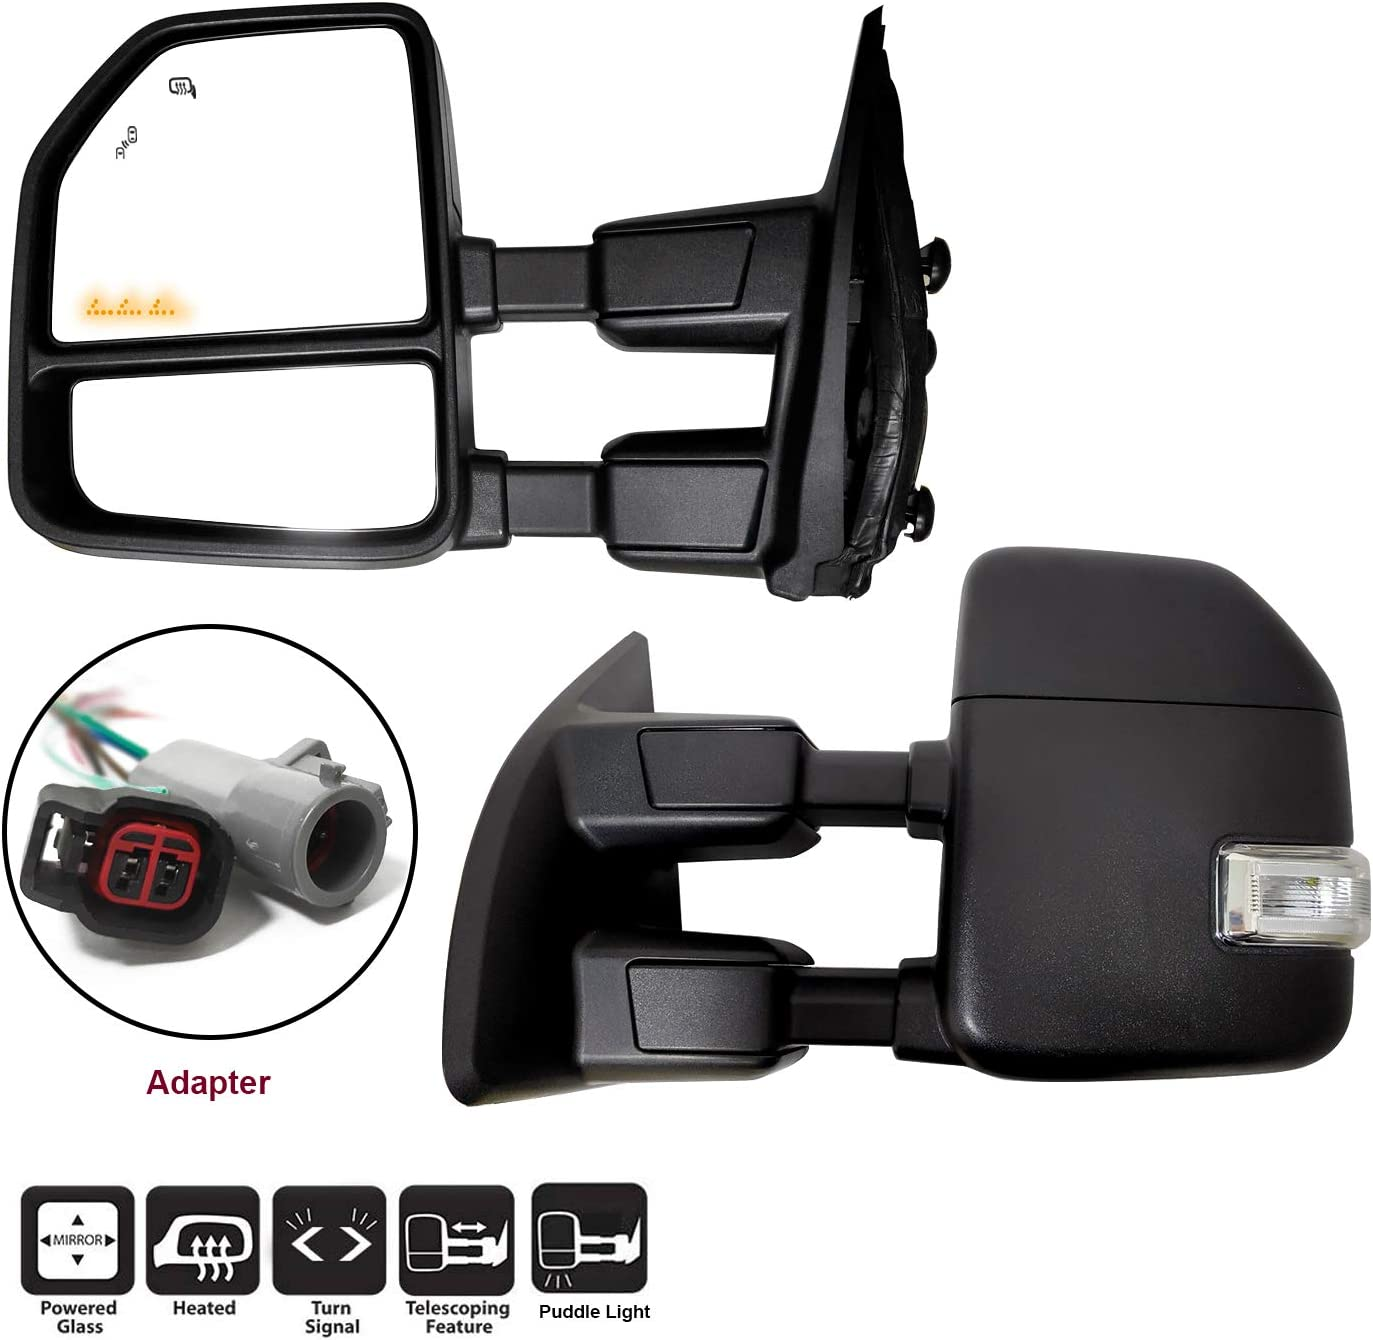 AERDM New towing mirror Black Housing fit Ford Super Duty F-250 F-350 F-450 F-550 1999 2000 2001 2002 w//Blind Spot with Turn Signal,Clearance and Auxiliary Lamp